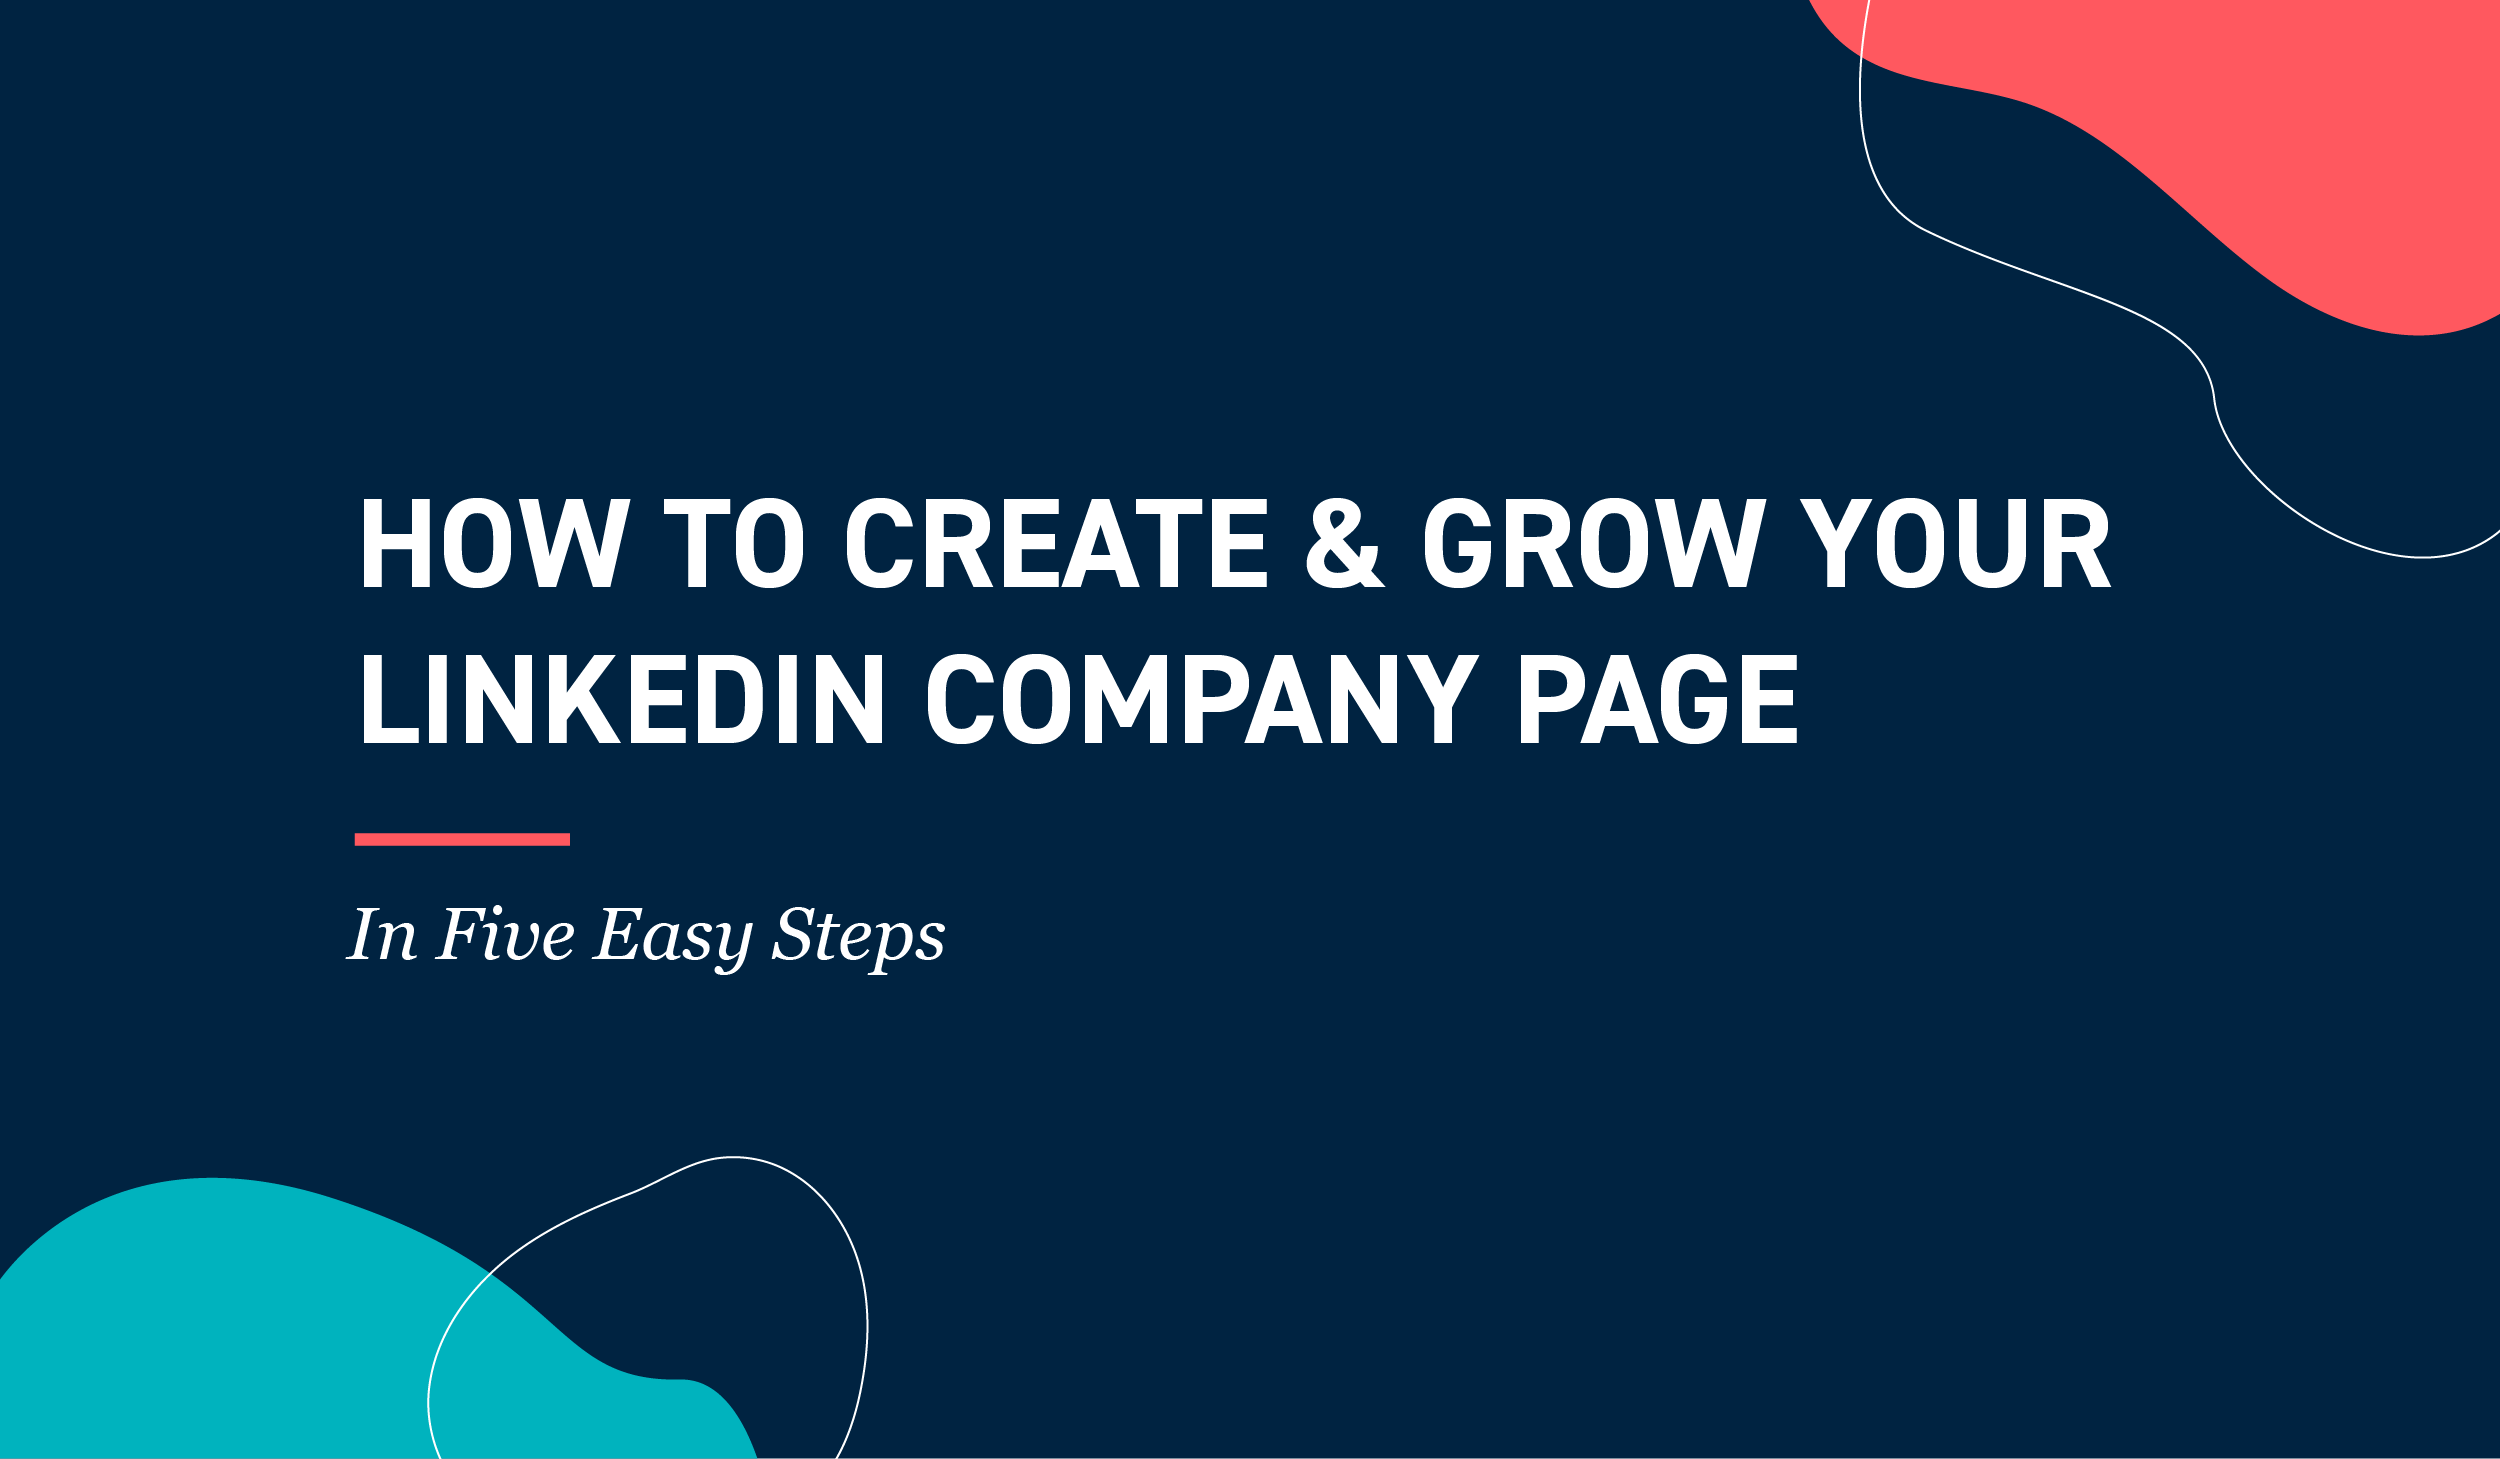 How to Create & Grow Your LinkedIn Company Page Top Image